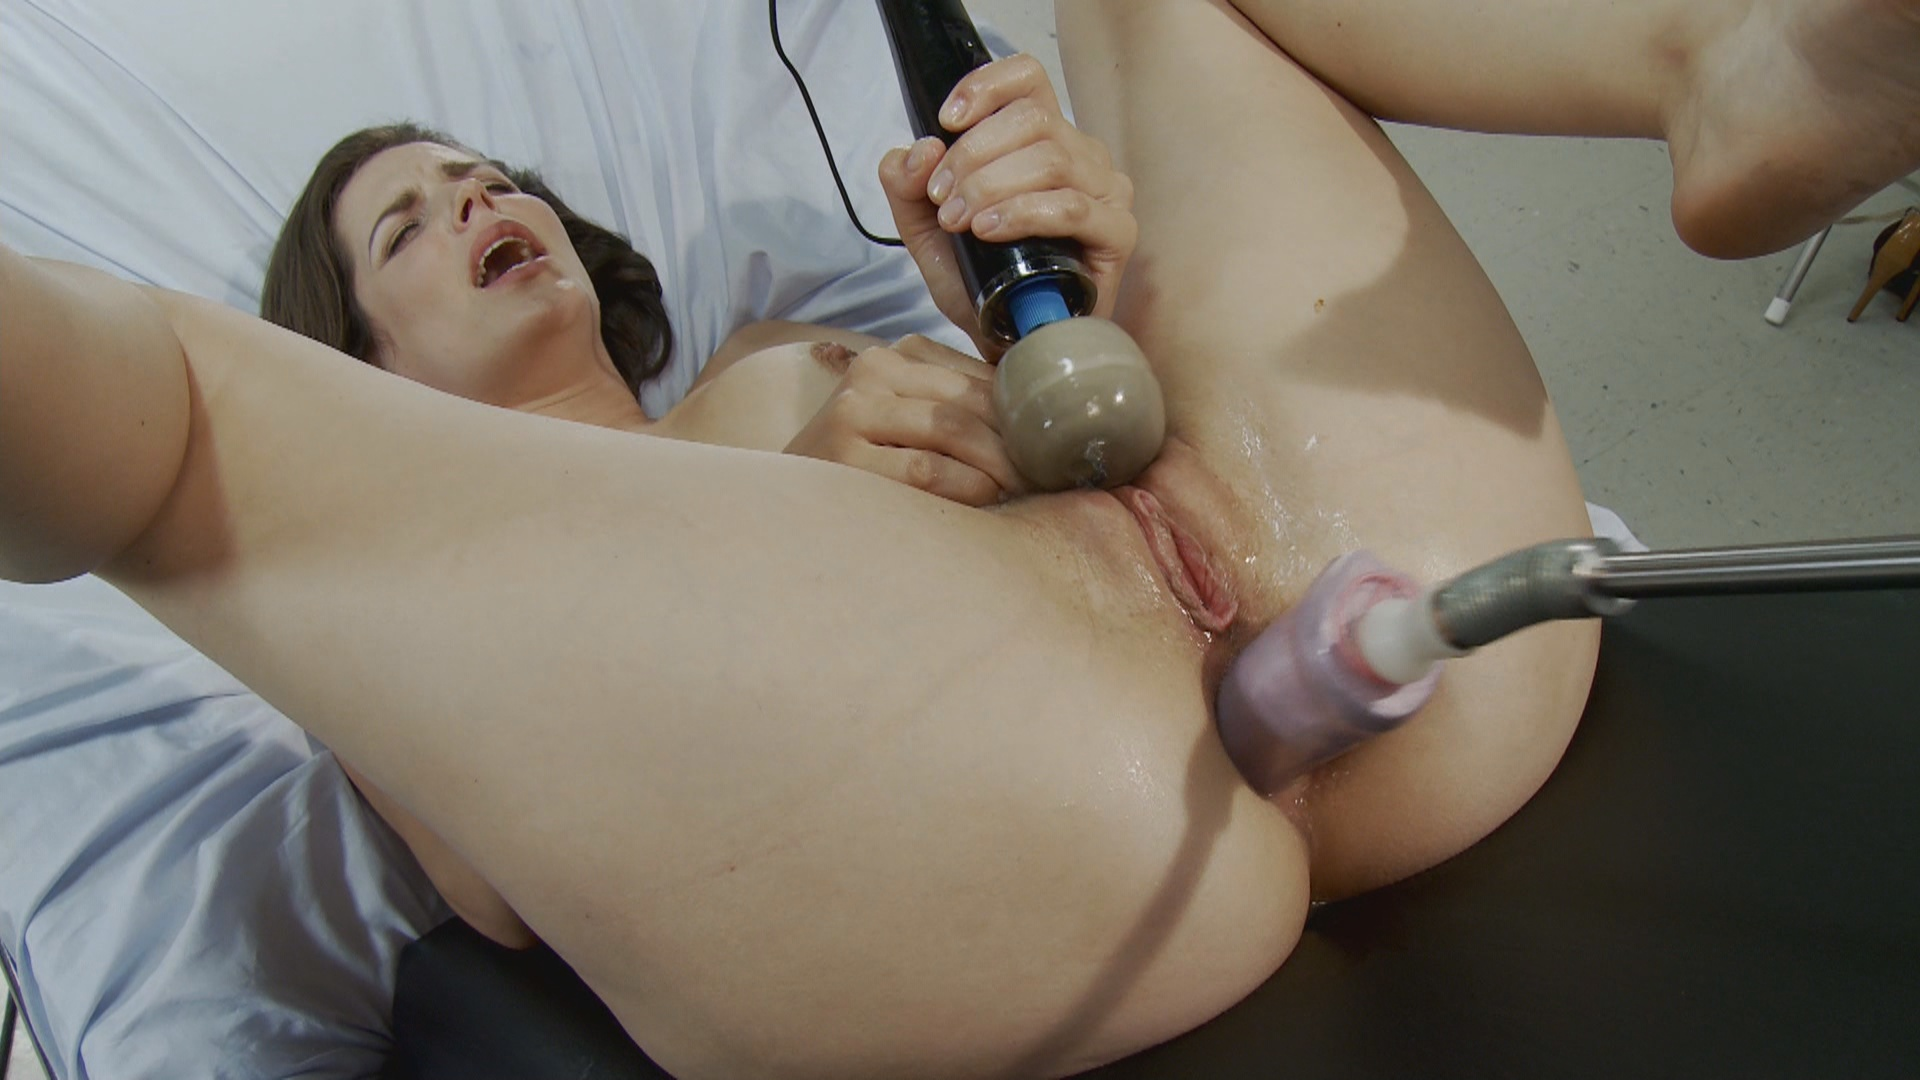 Fucking Machines: Pile Driver And Sybian Fucking xvideos